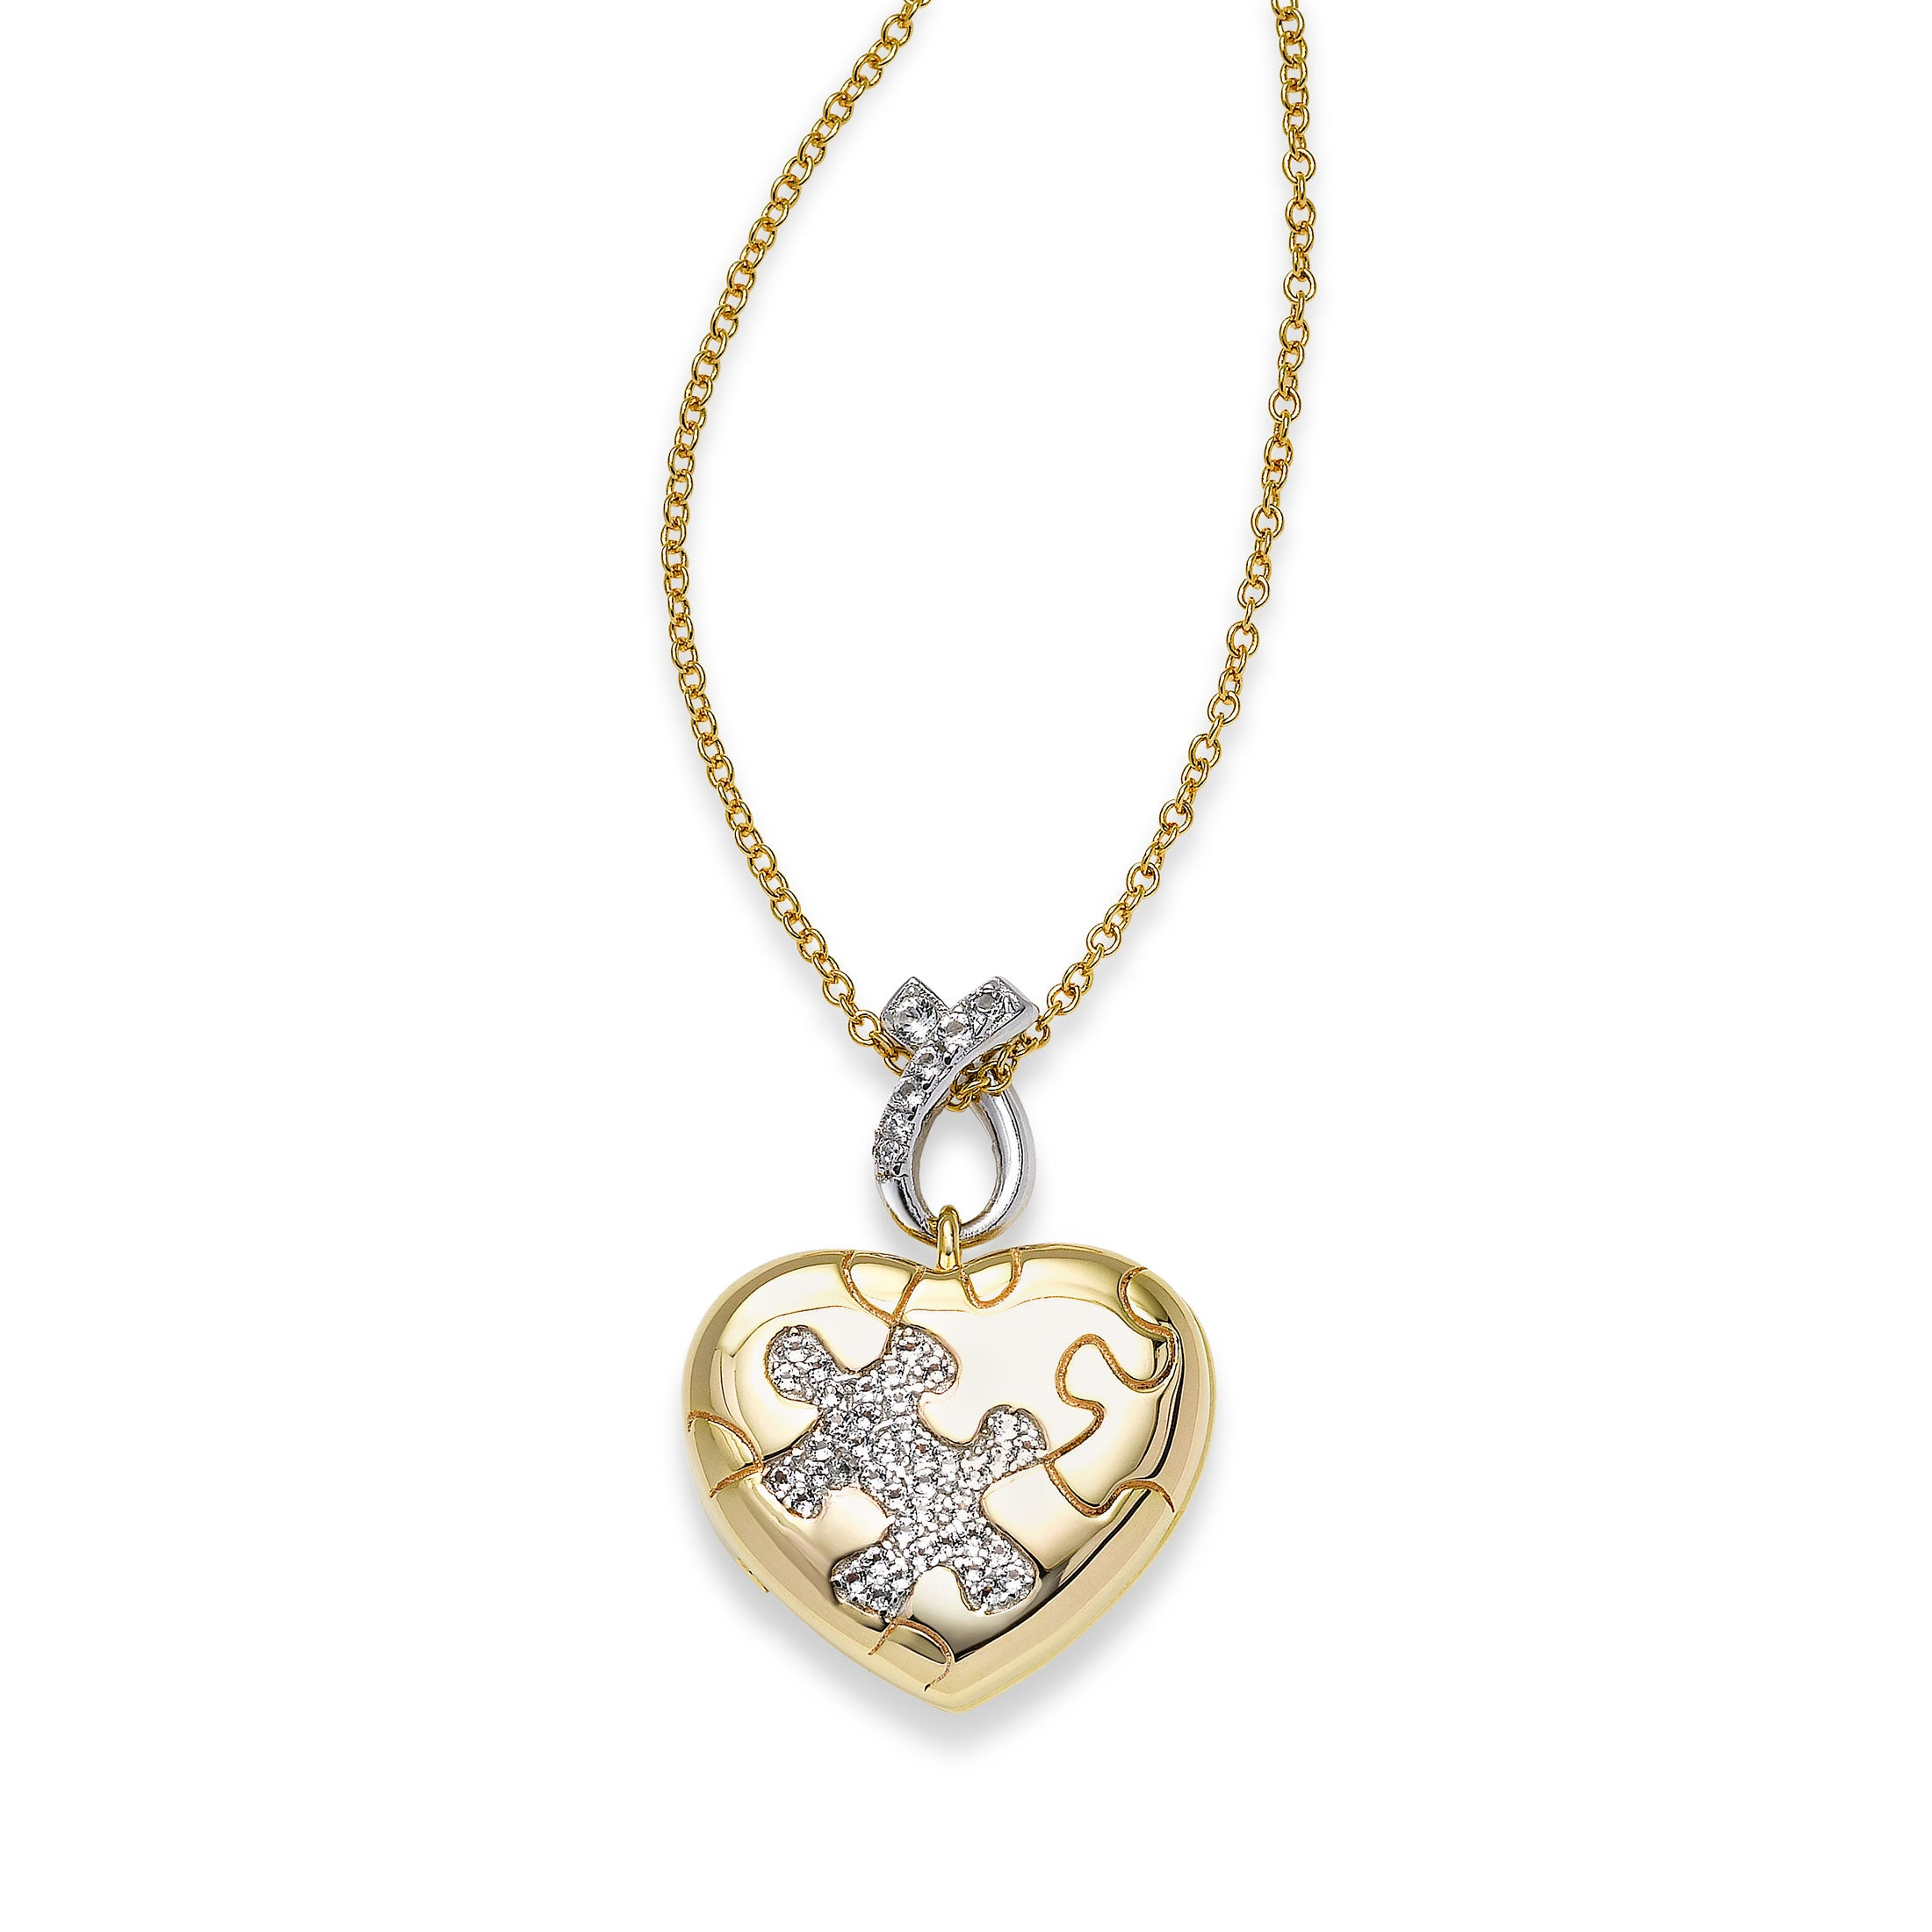 Heart Shaped Autism Puzzle Piece Locket, Sterling Silver and Vermeil